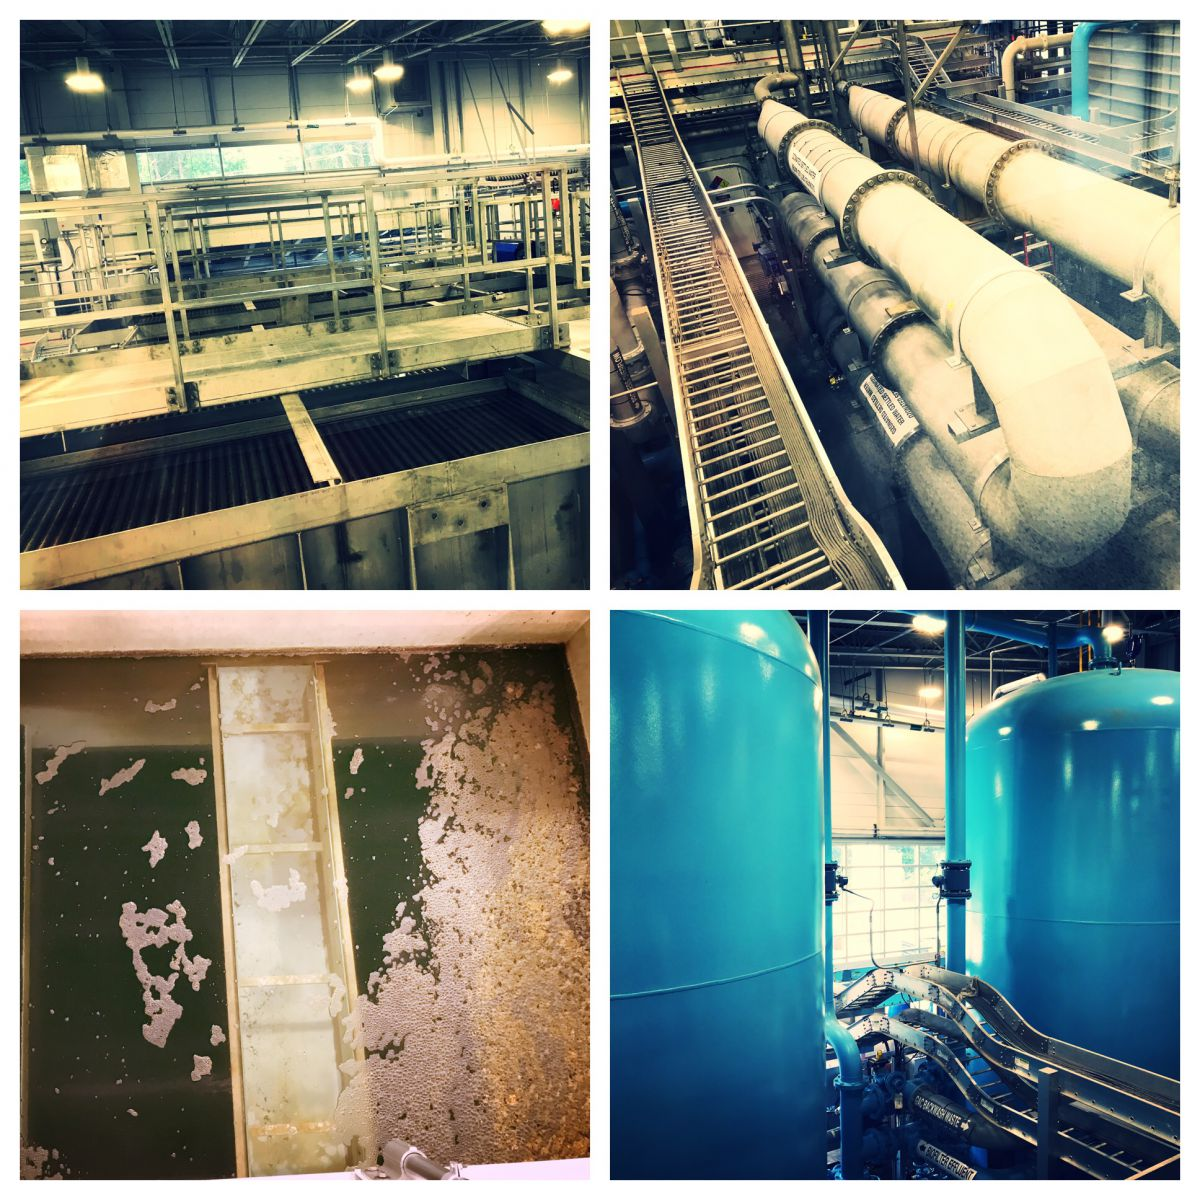 Advanced water treatment facility for indirect potable water reuse